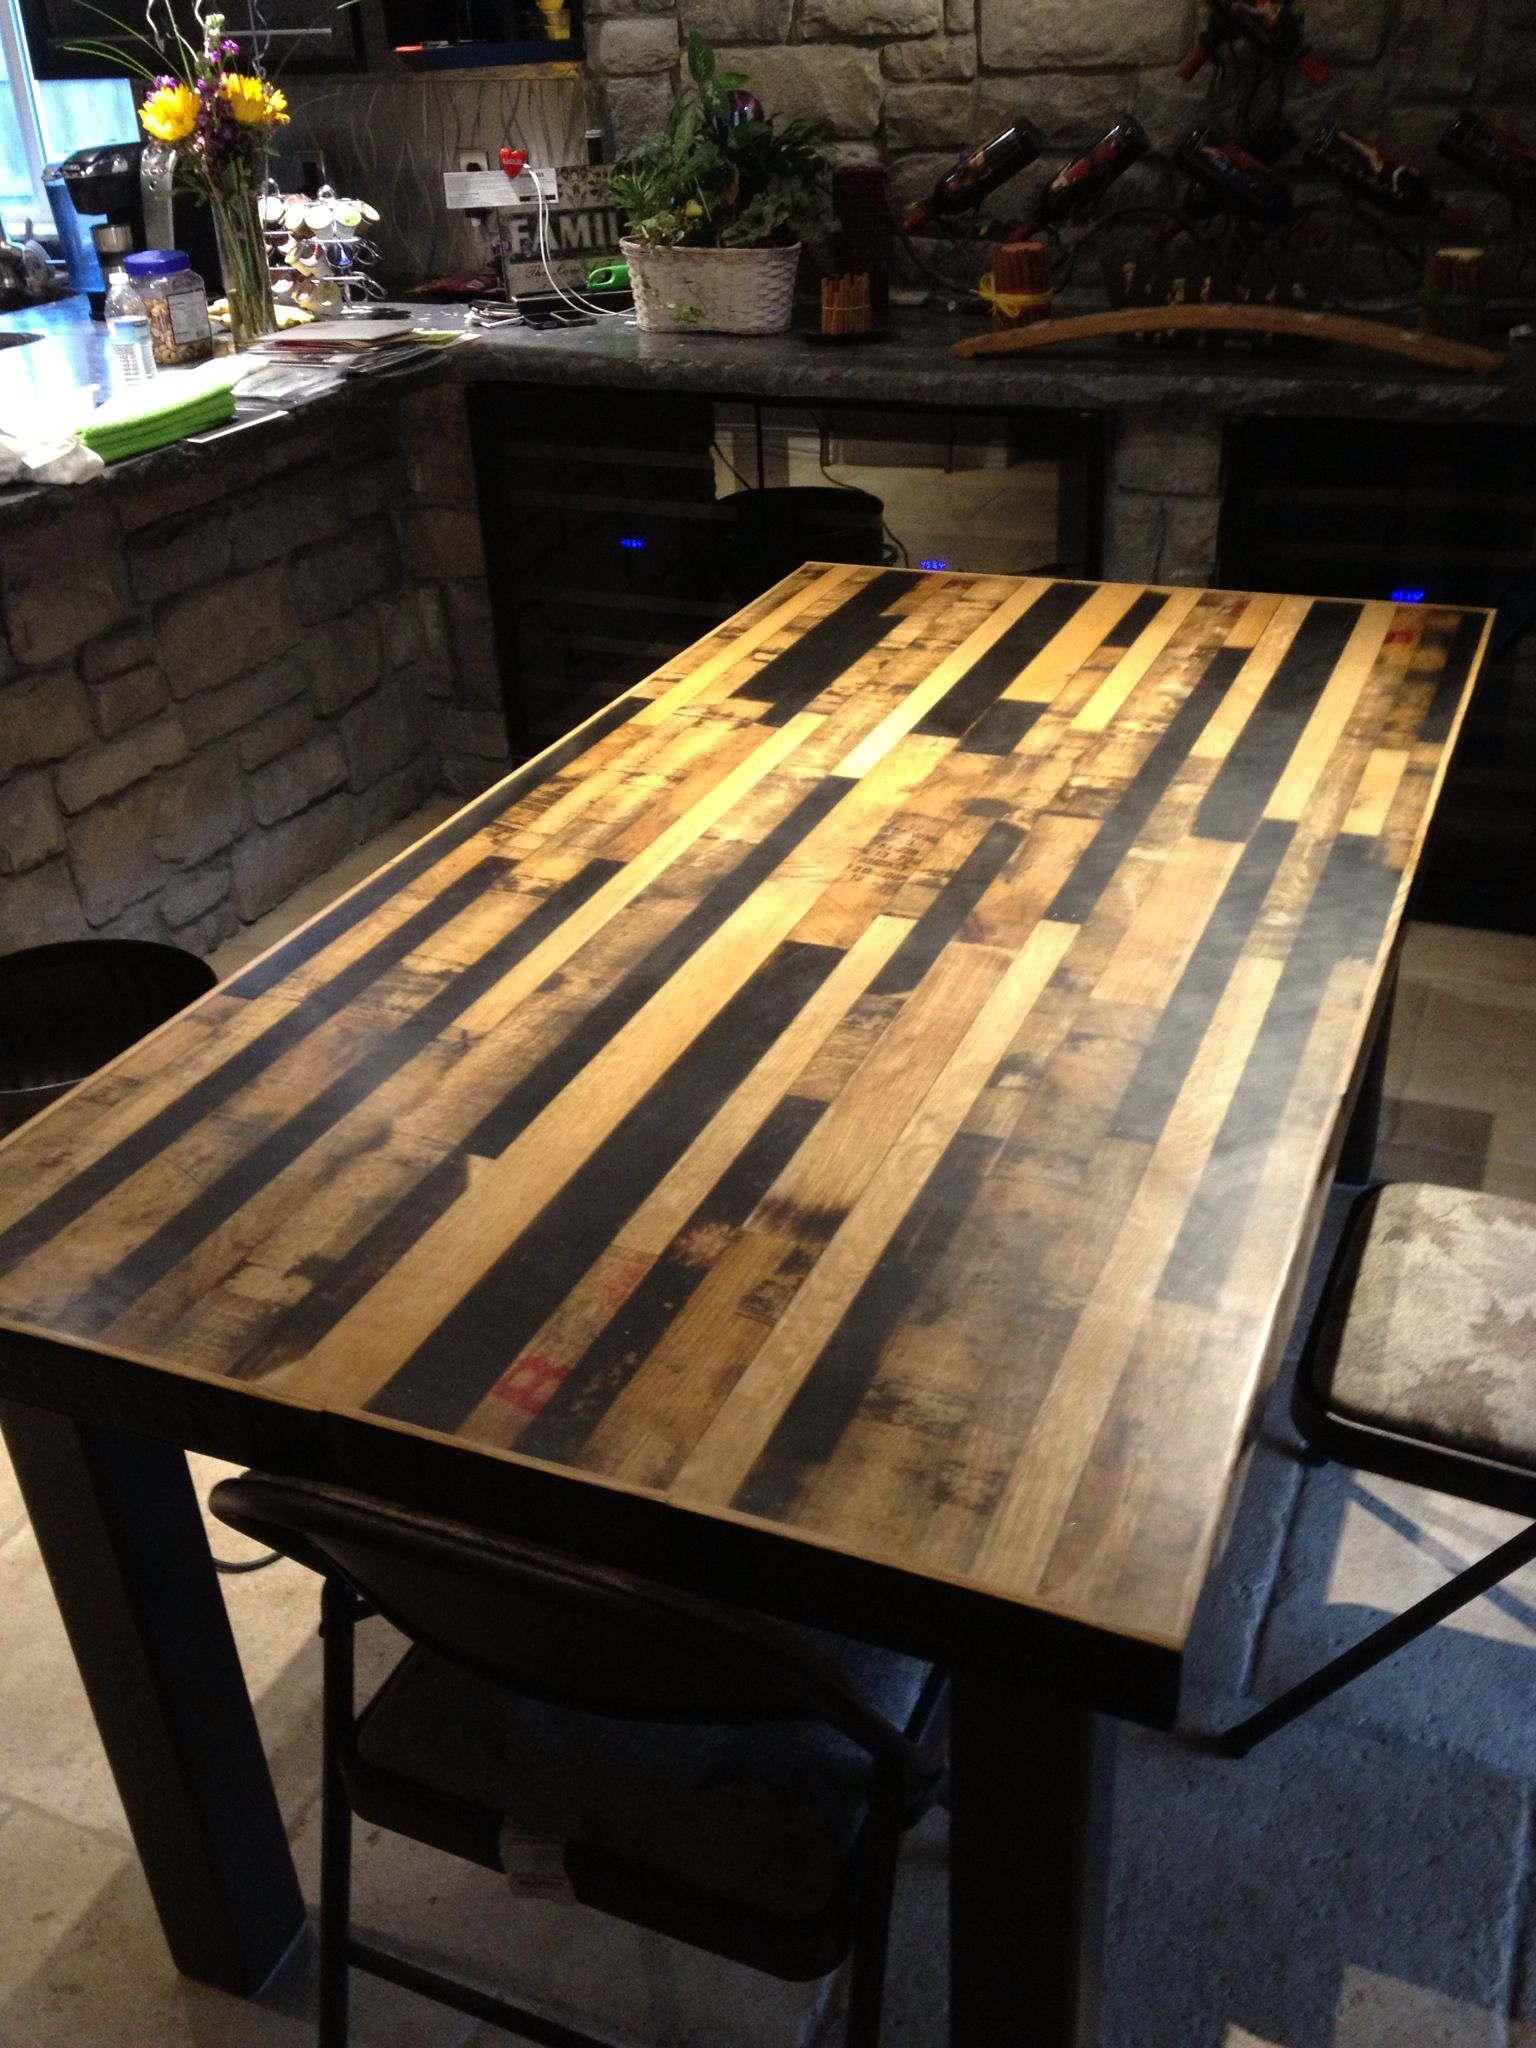 Bourbon barrel table wine crafts pinterest